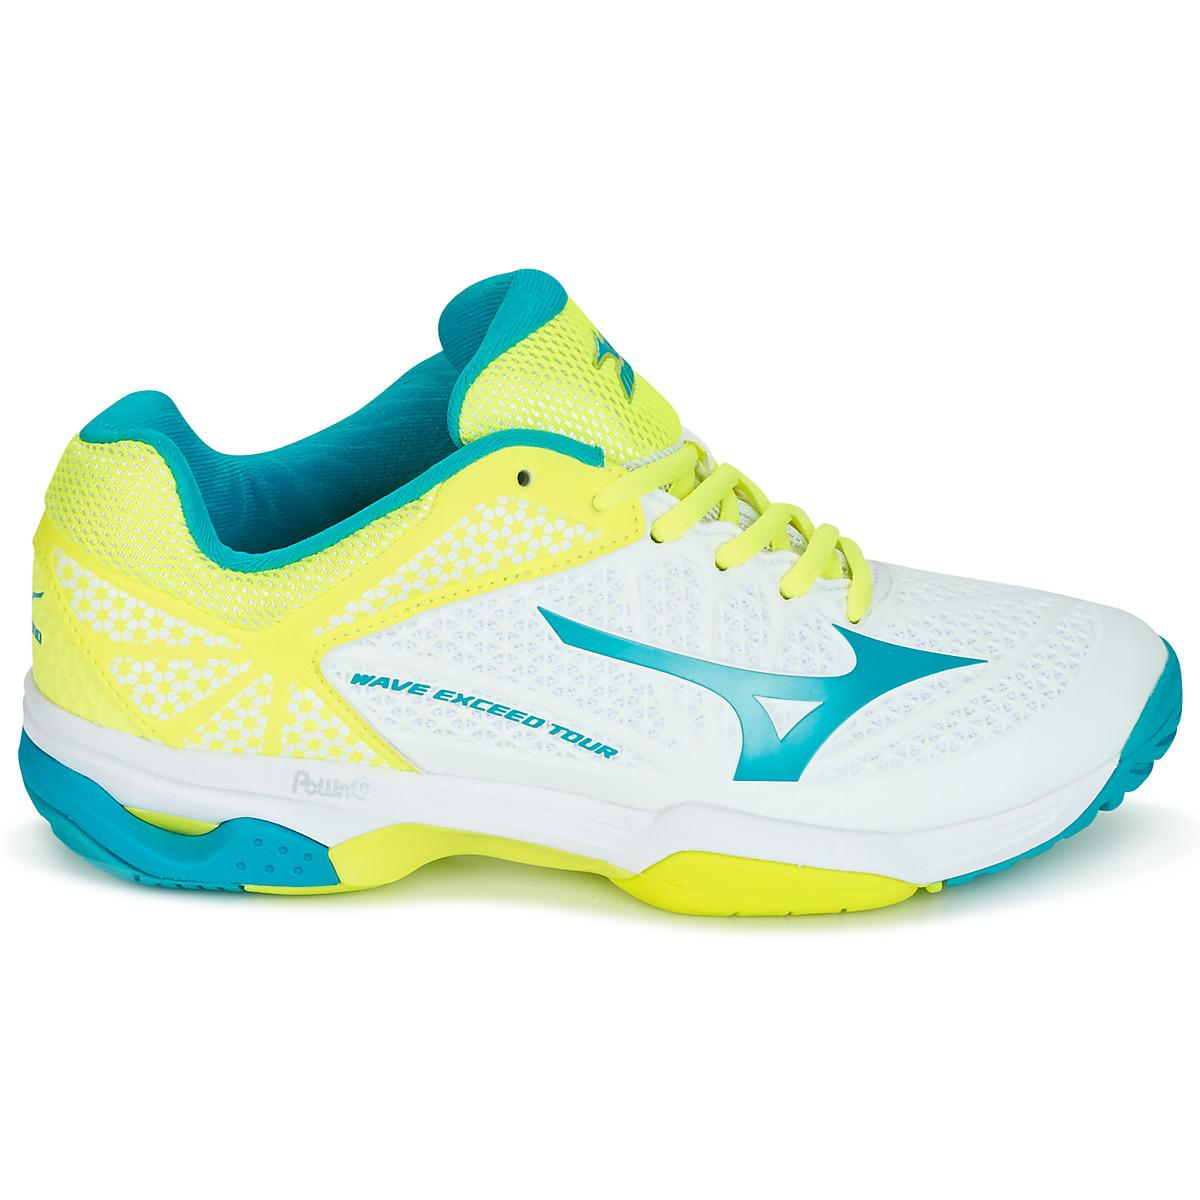 low priced 558dc 1f9a1 Mizuno - Wave Exceed Tour 2 Cc (w) Women s Tennis Trainers (shoes). View  fullscreen